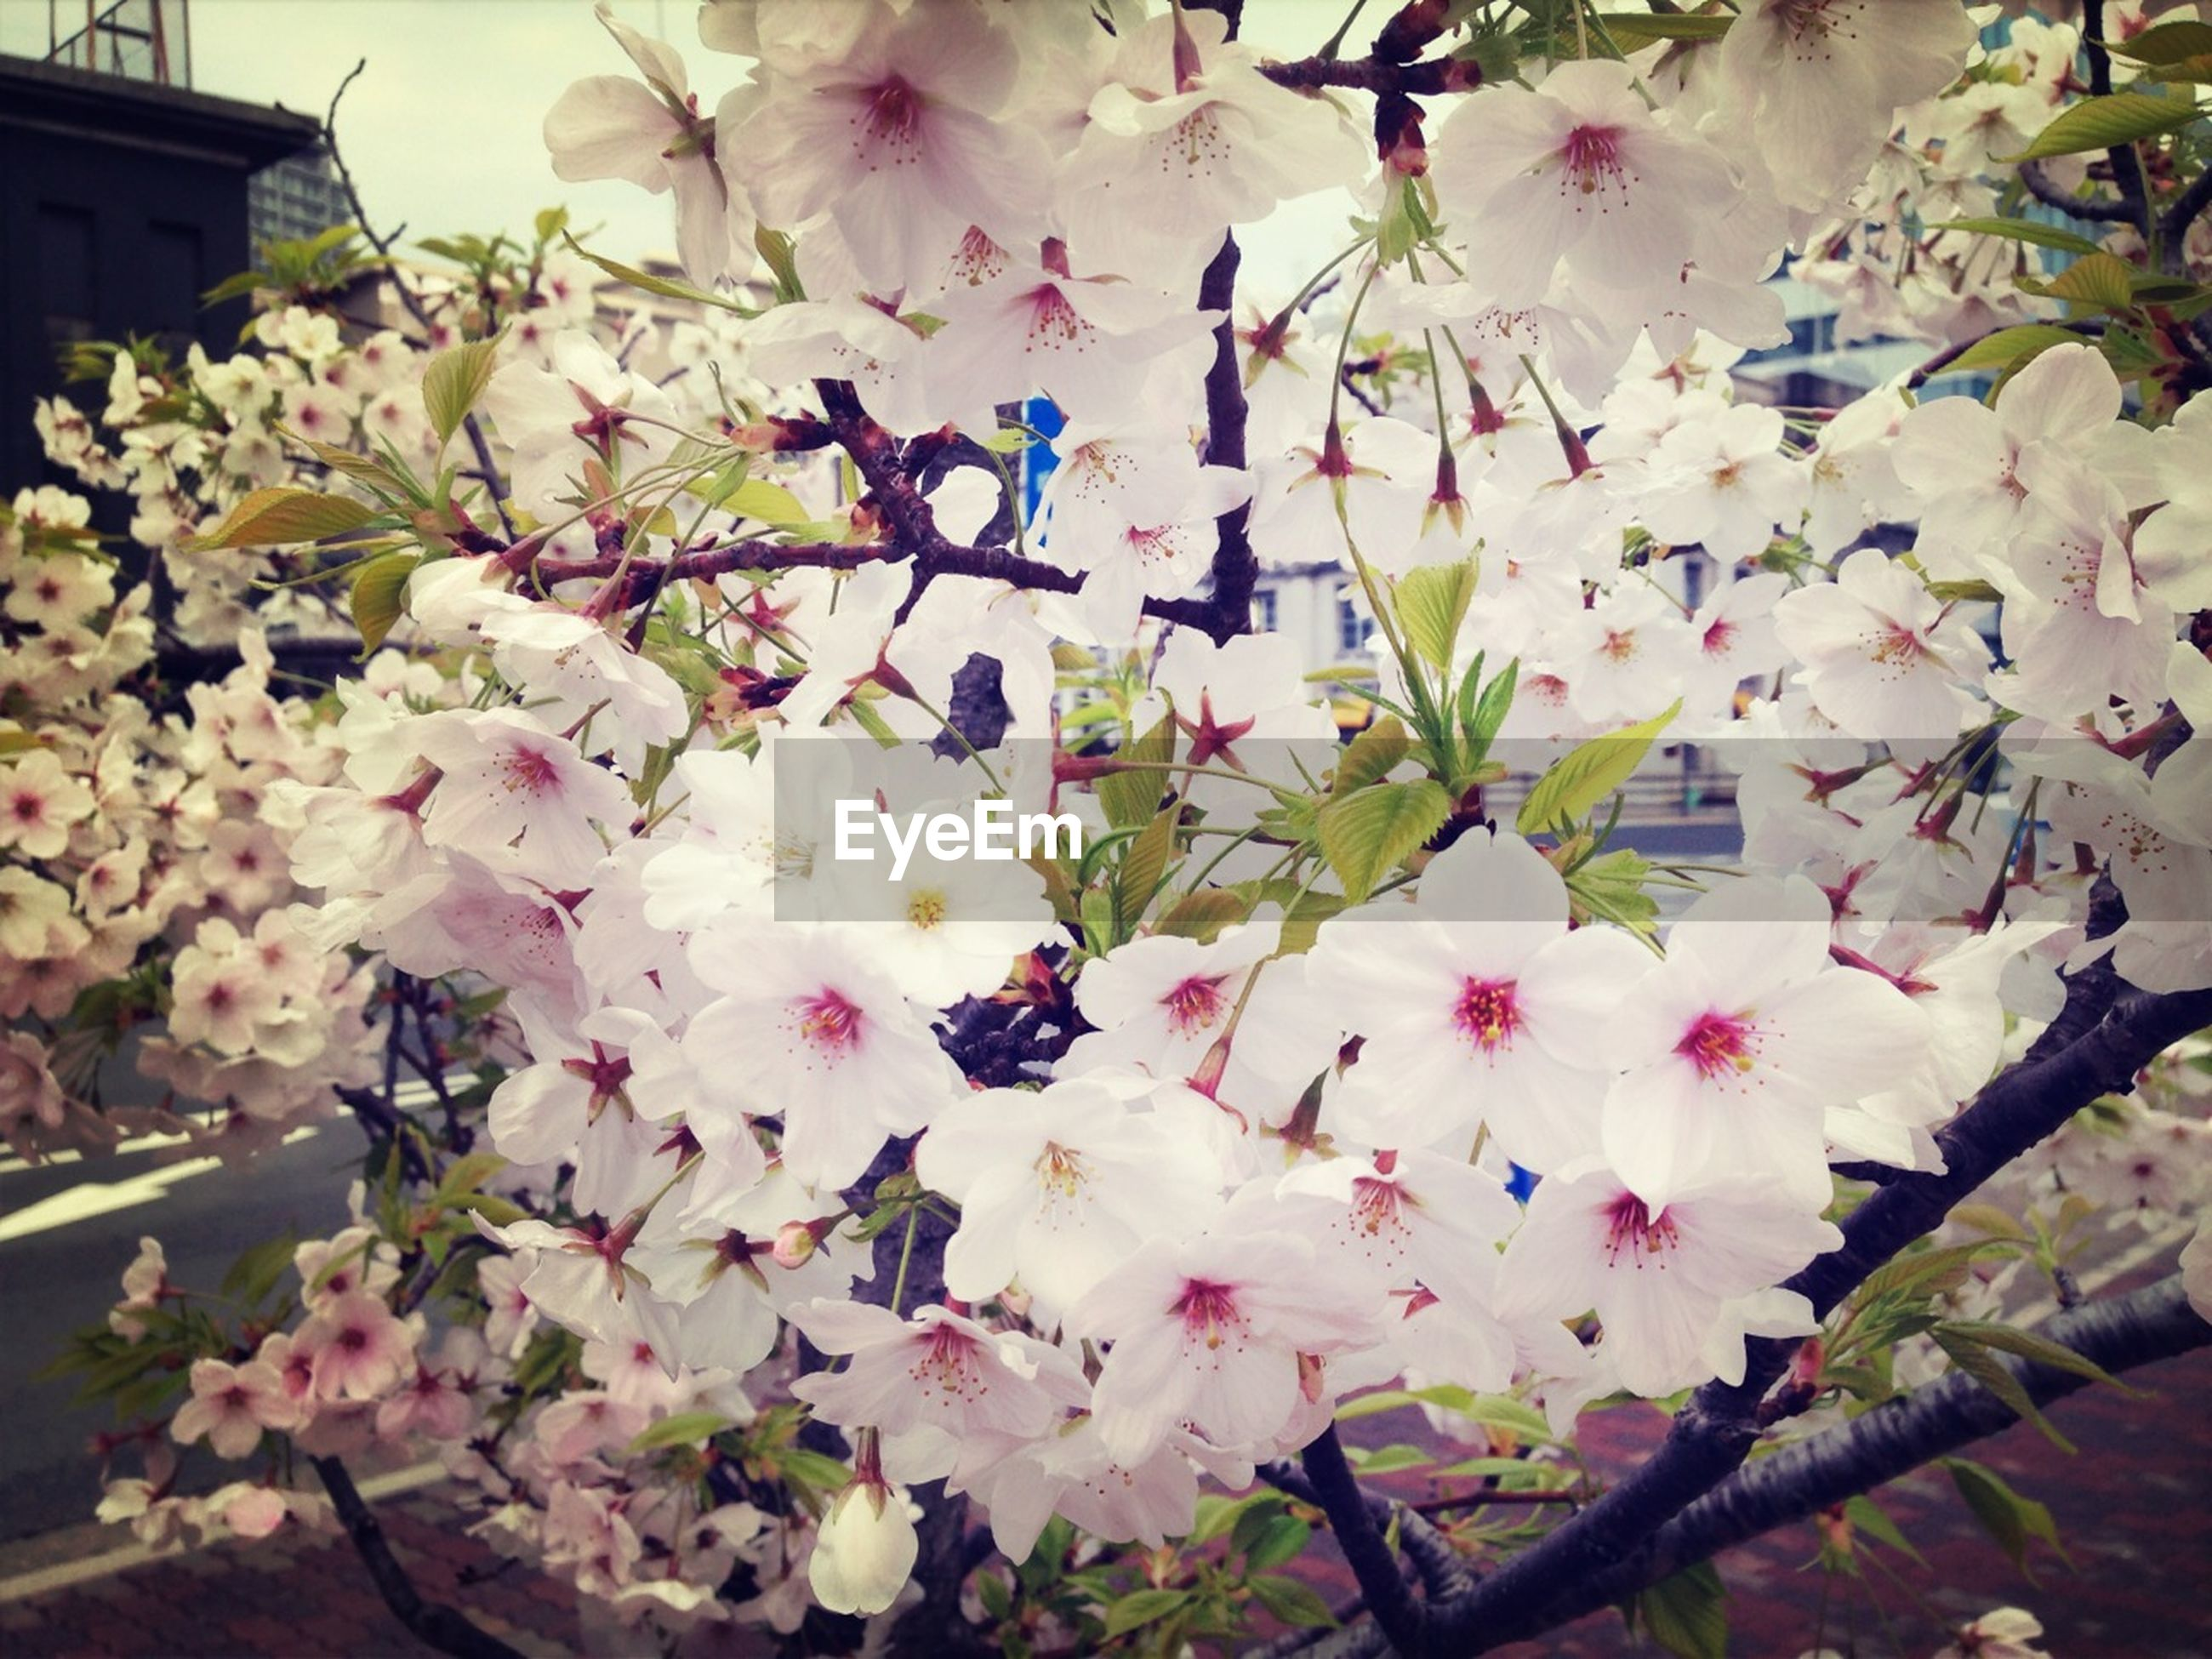 flower, freshness, fragility, petal, growth, pink color, beauty in nature, blossom, nature, blooming, in bloom, branch, cherry blossom, cherry tree, flower head, low angle view, white color, springtime, tree, plant